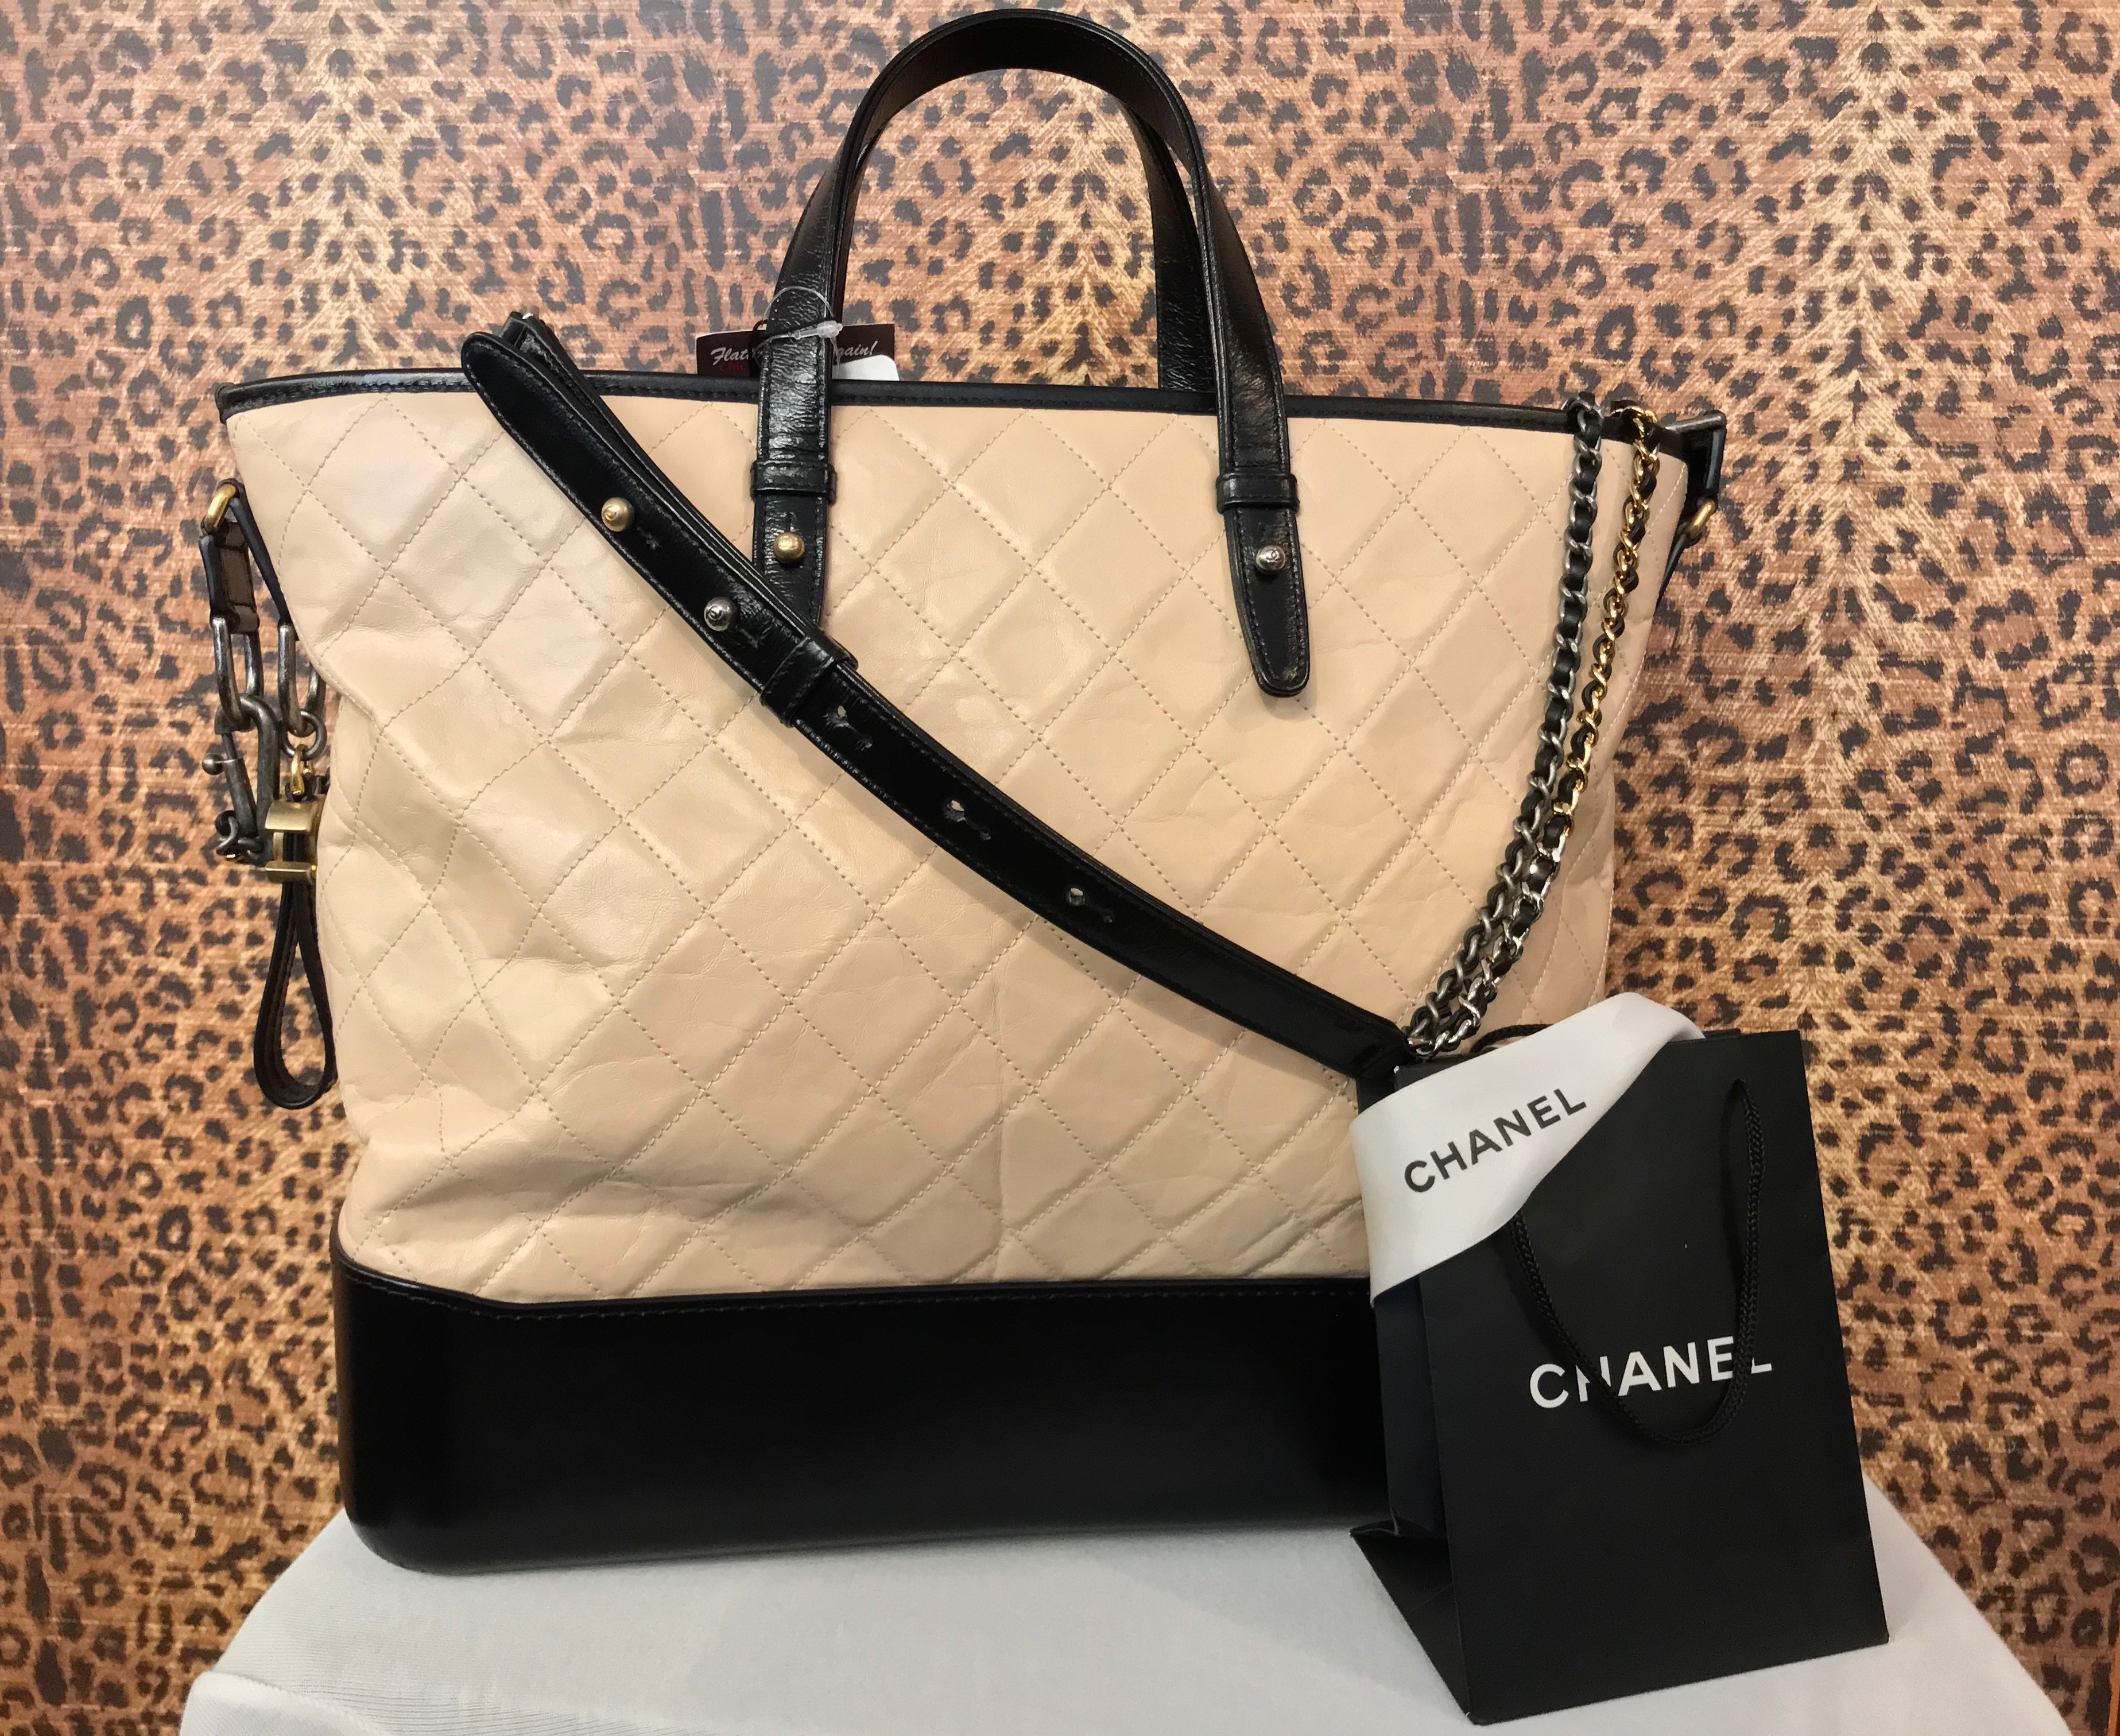 Chanel~ Nude, Quilted Leather, 2018, Purses, Handbags Price: $3647.95